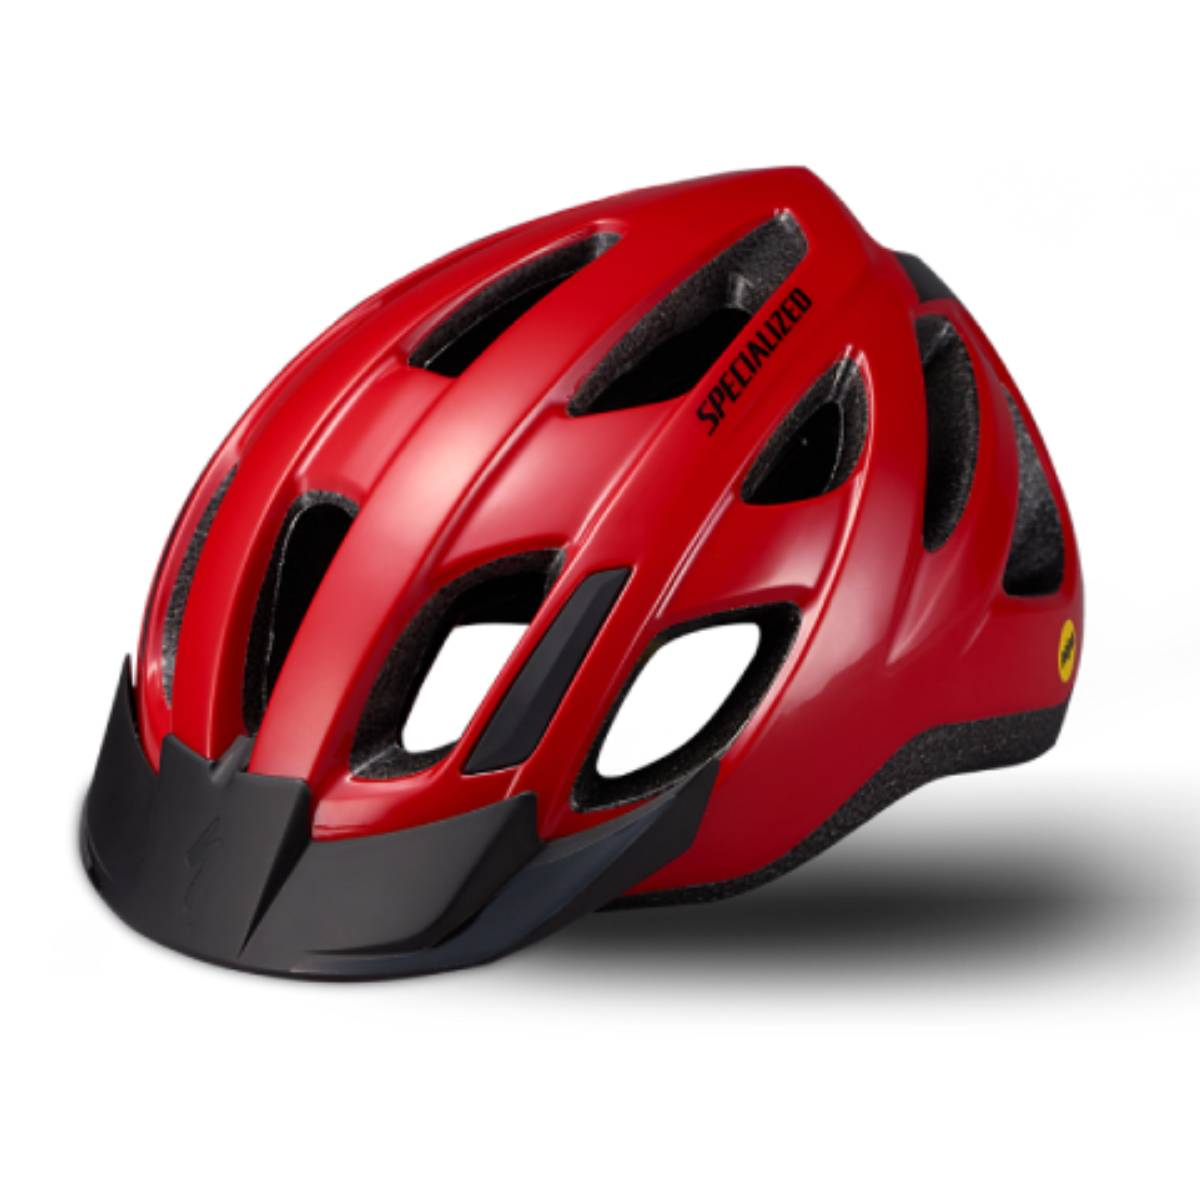 CASQUE SPECIALIZED CENTRO MIPS ADULTE ROUGE